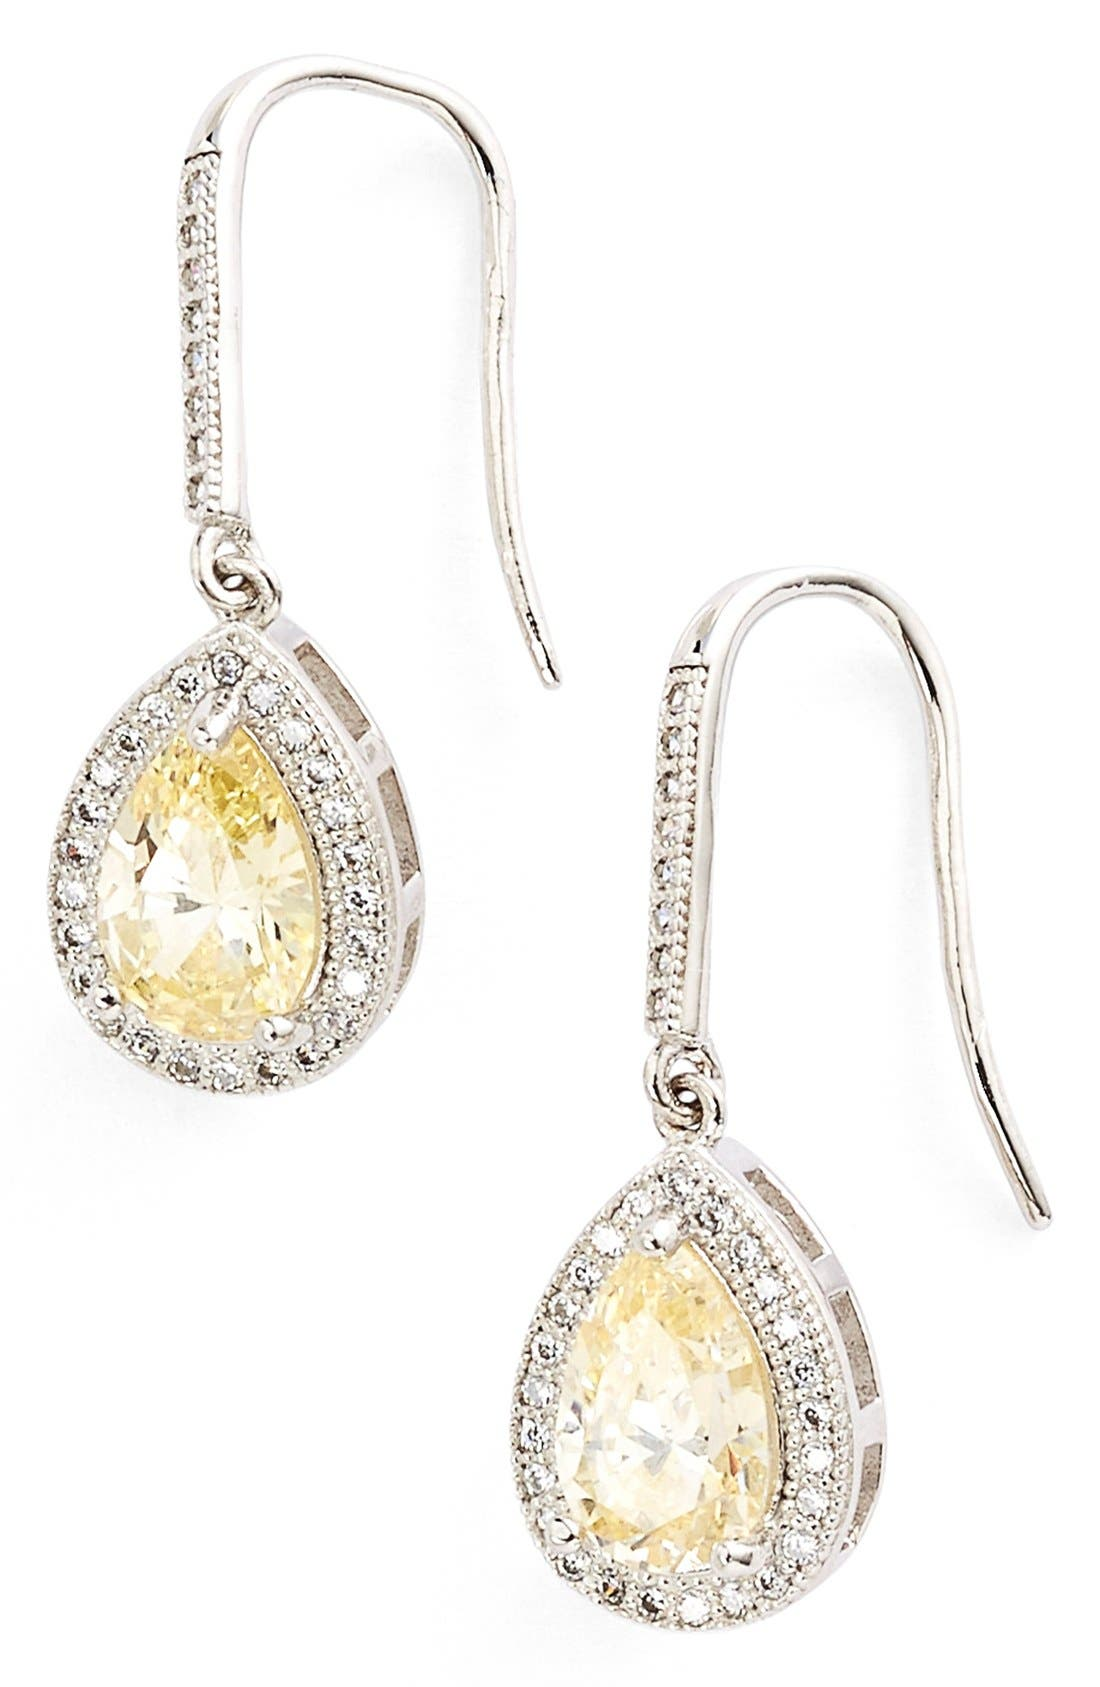 'Lassaire' Canary Drop Earrings,                             Main thumbnail 1, color,                             SILVER/ CANARY YELLOW